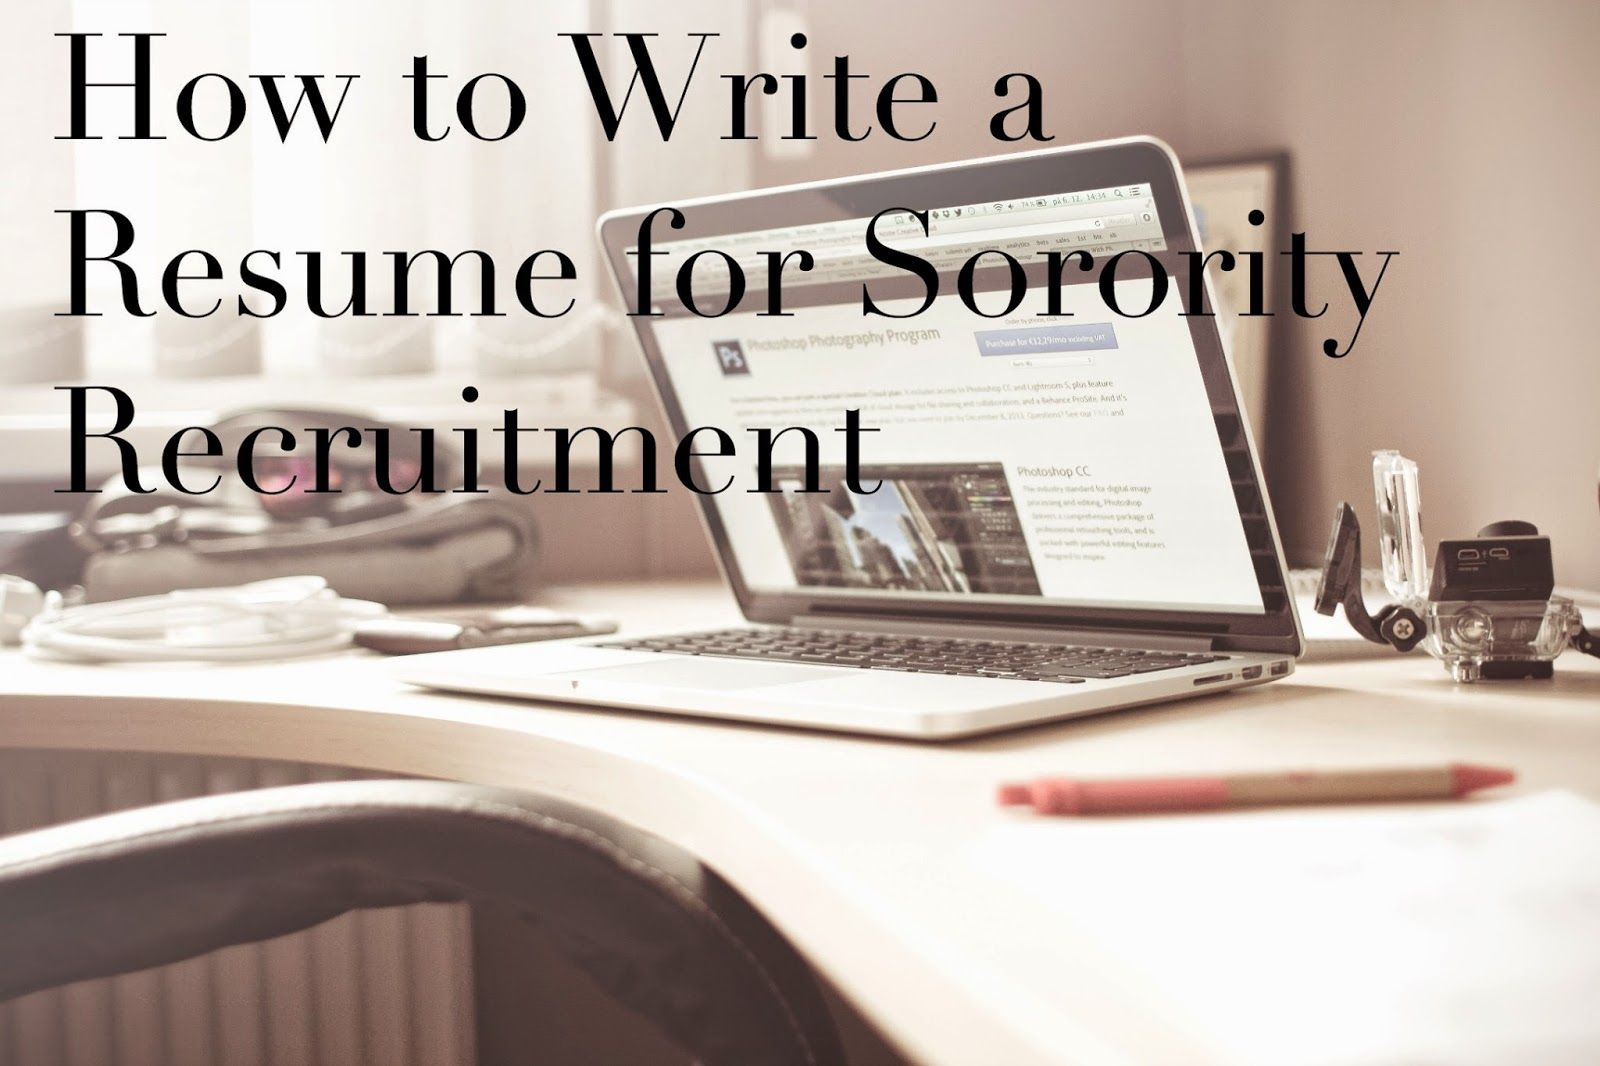 How to Write a Resume for Sorority